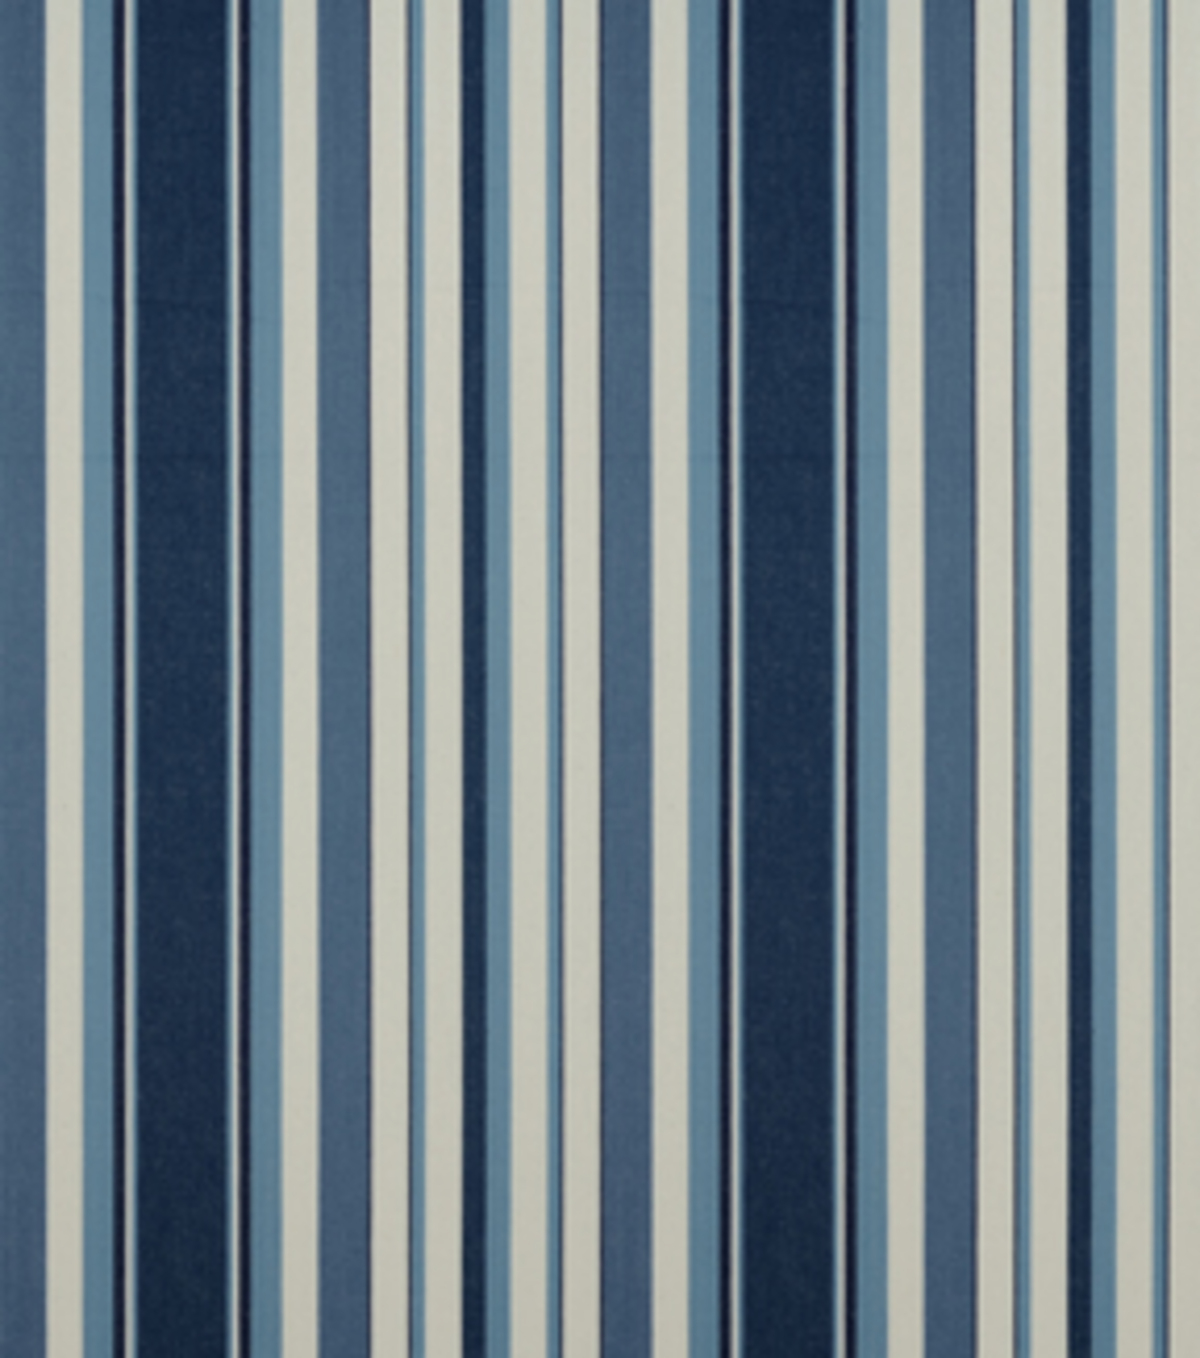 Home Decor 8\u0022x8\u0022 Fabric Swatch-Covington South Beach 56 Mariner